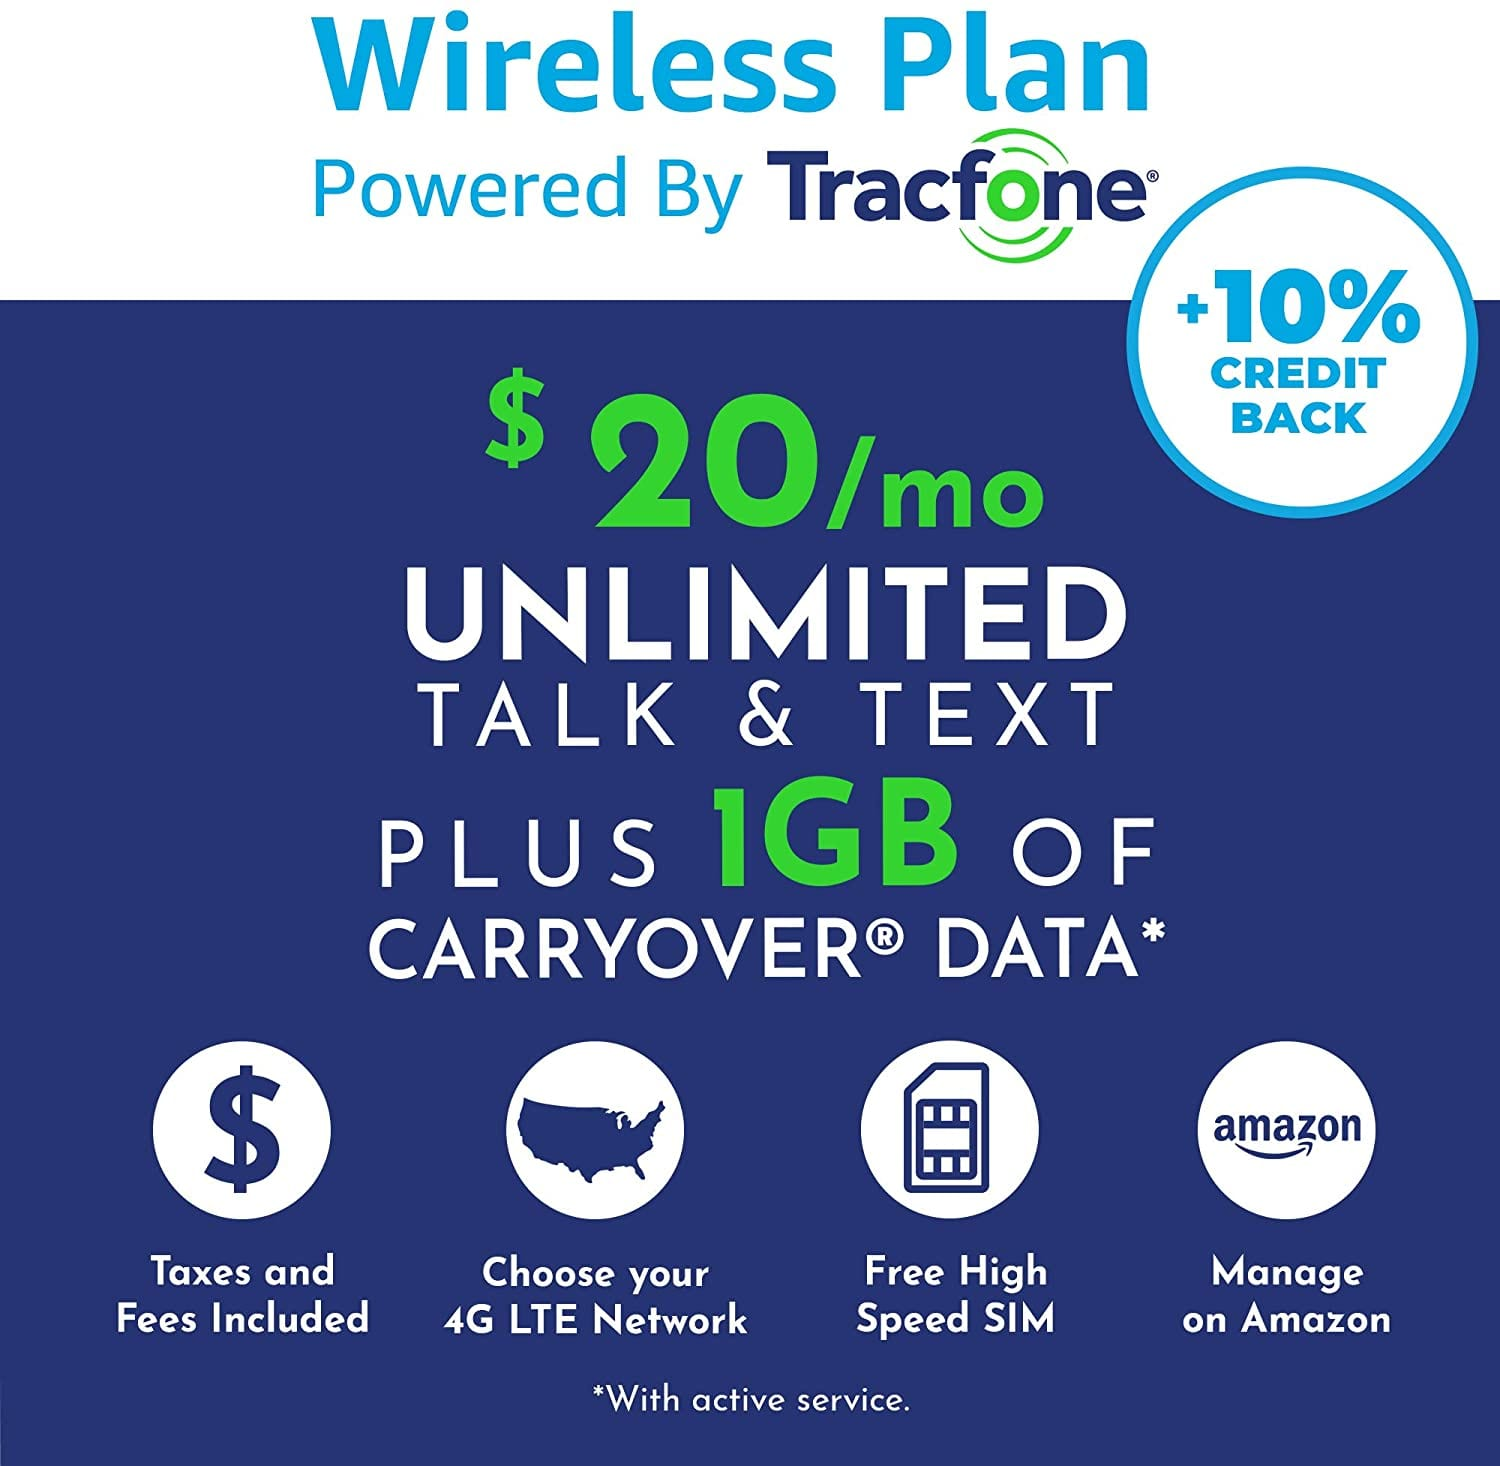 Amazon Wireless Plans - Tracfone Unlimited Talk, Text, 1GB Exclusive on Amazon w/Prime - $20 ALL IN ($5 OFF First Month) $15